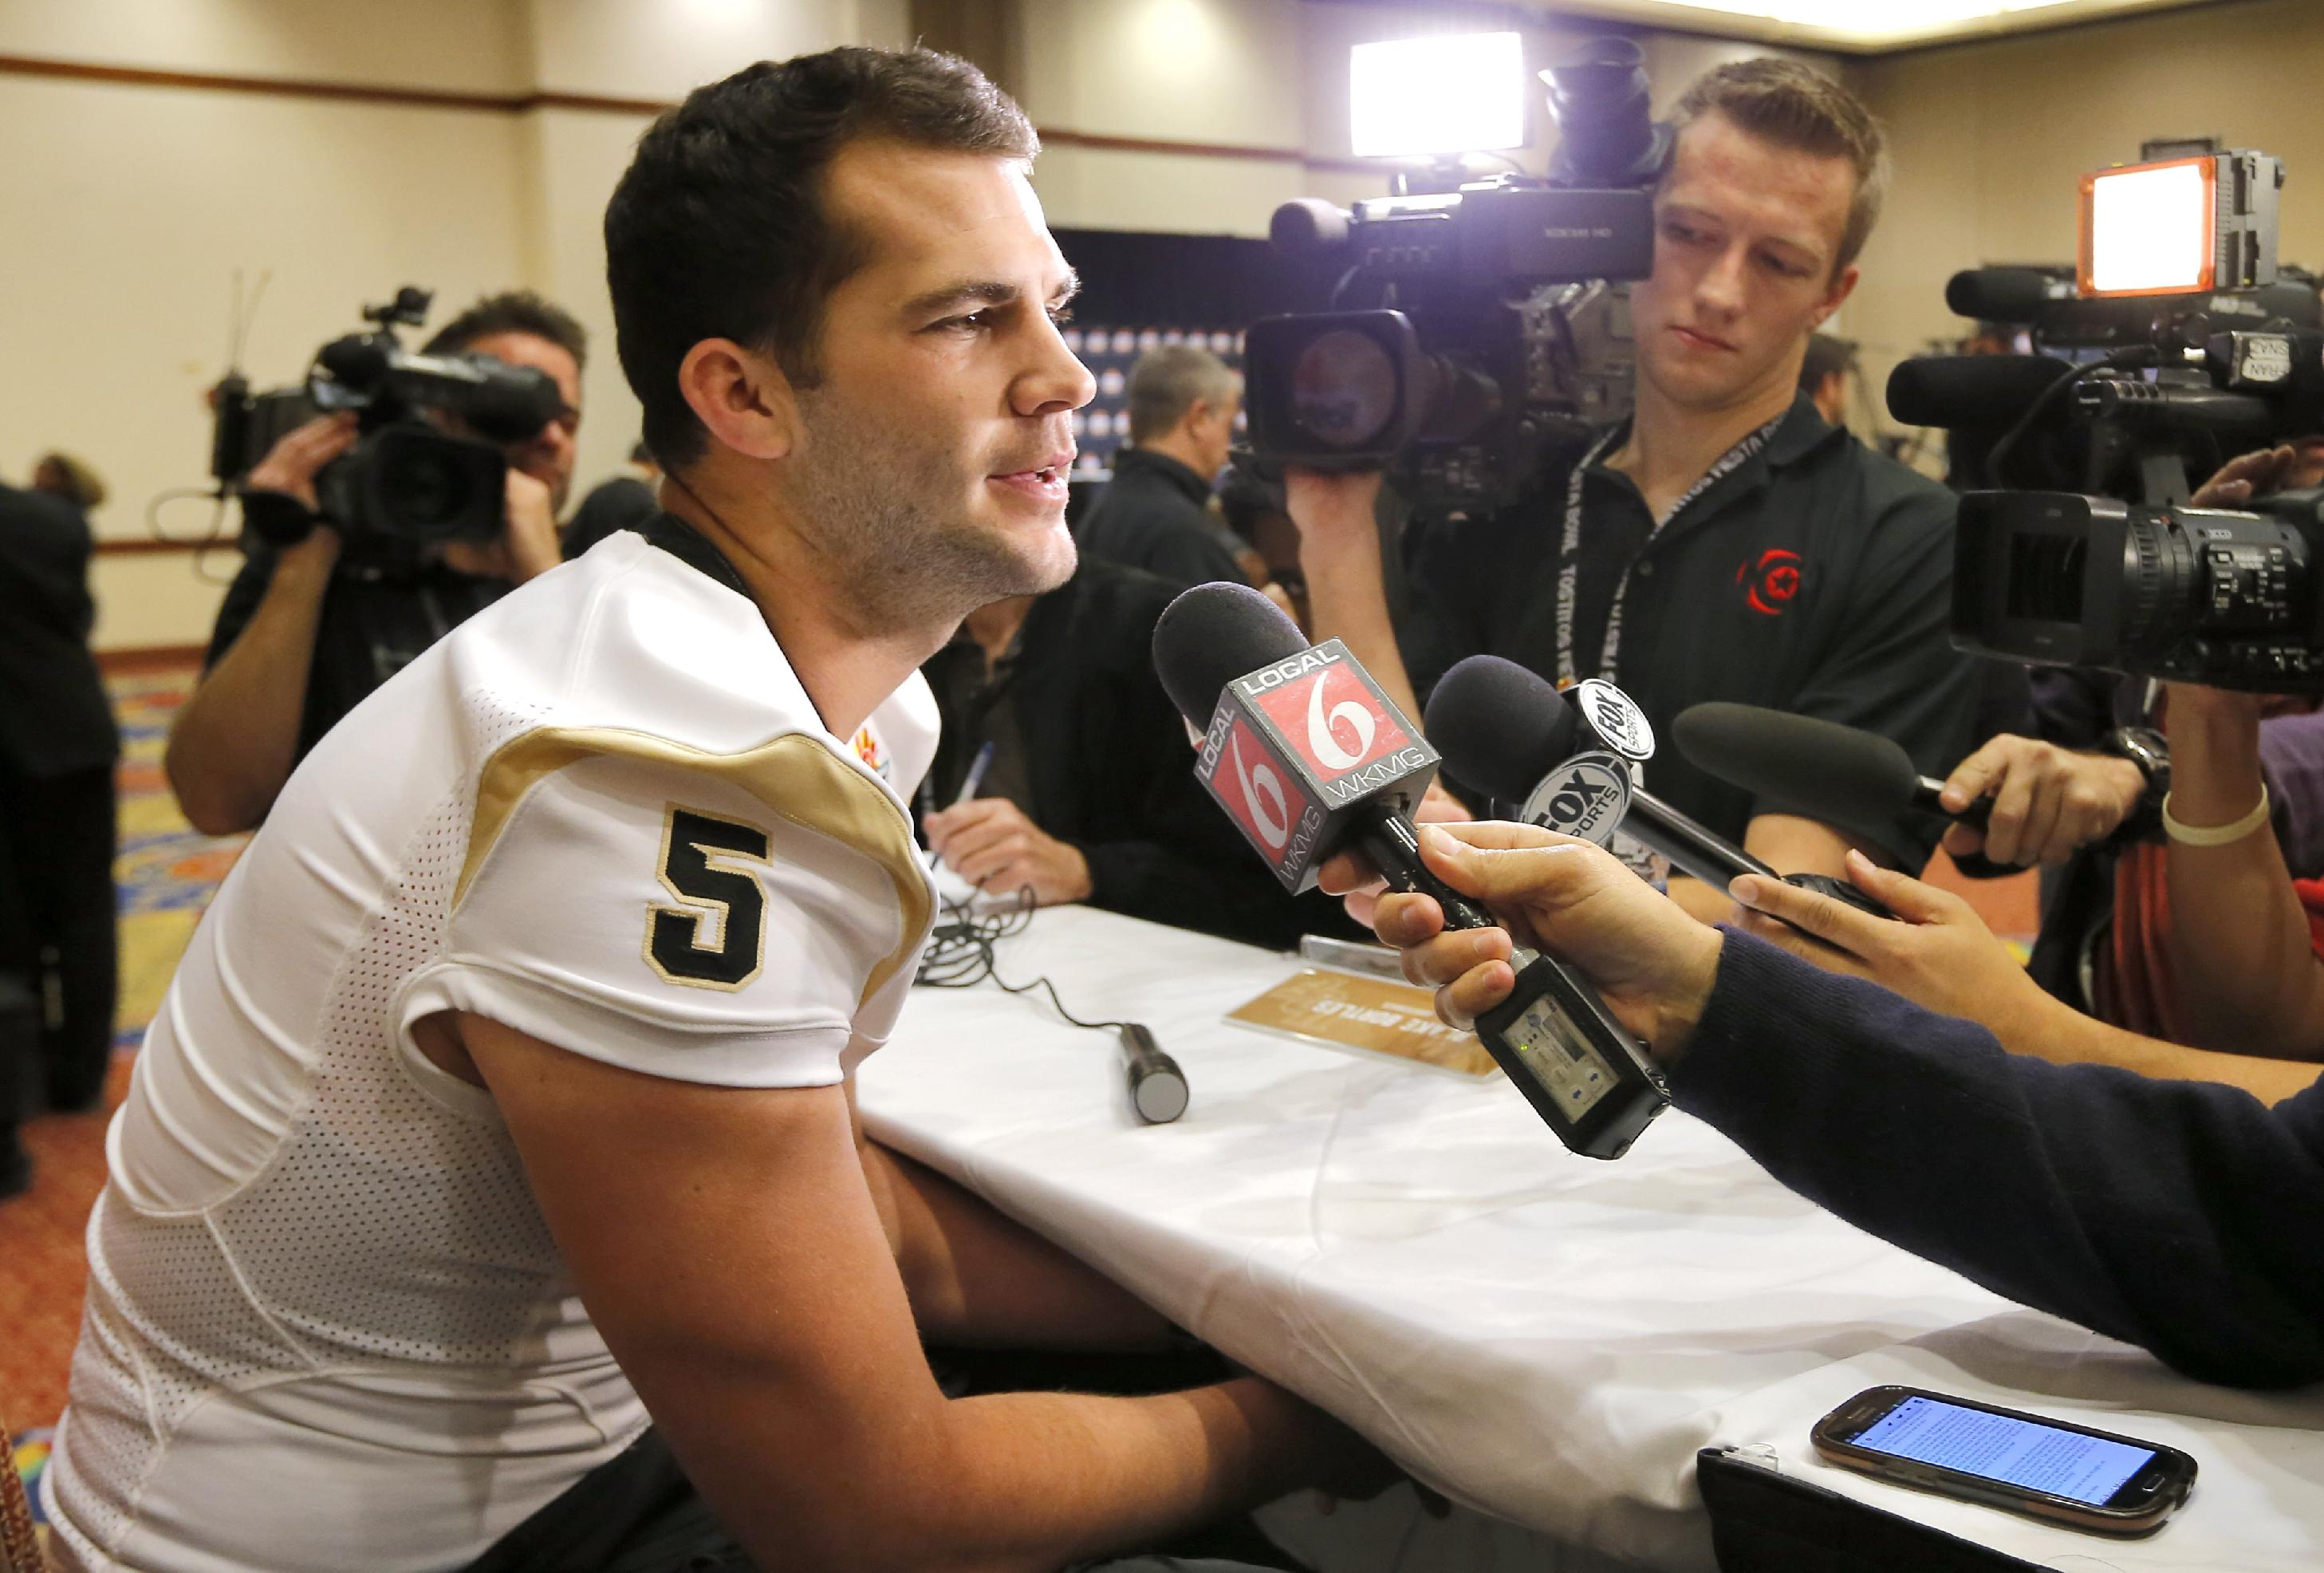 University of Central Florida quarterback Blake Bortles takes questions during the Fiesta Bowl media Day, Monday, Dec. 30, 2013, in Scottsdale, Ariz. Central Florida will face Baylor on Jan. 1, 2014 in the Fiesta Bowl NCAA college football game